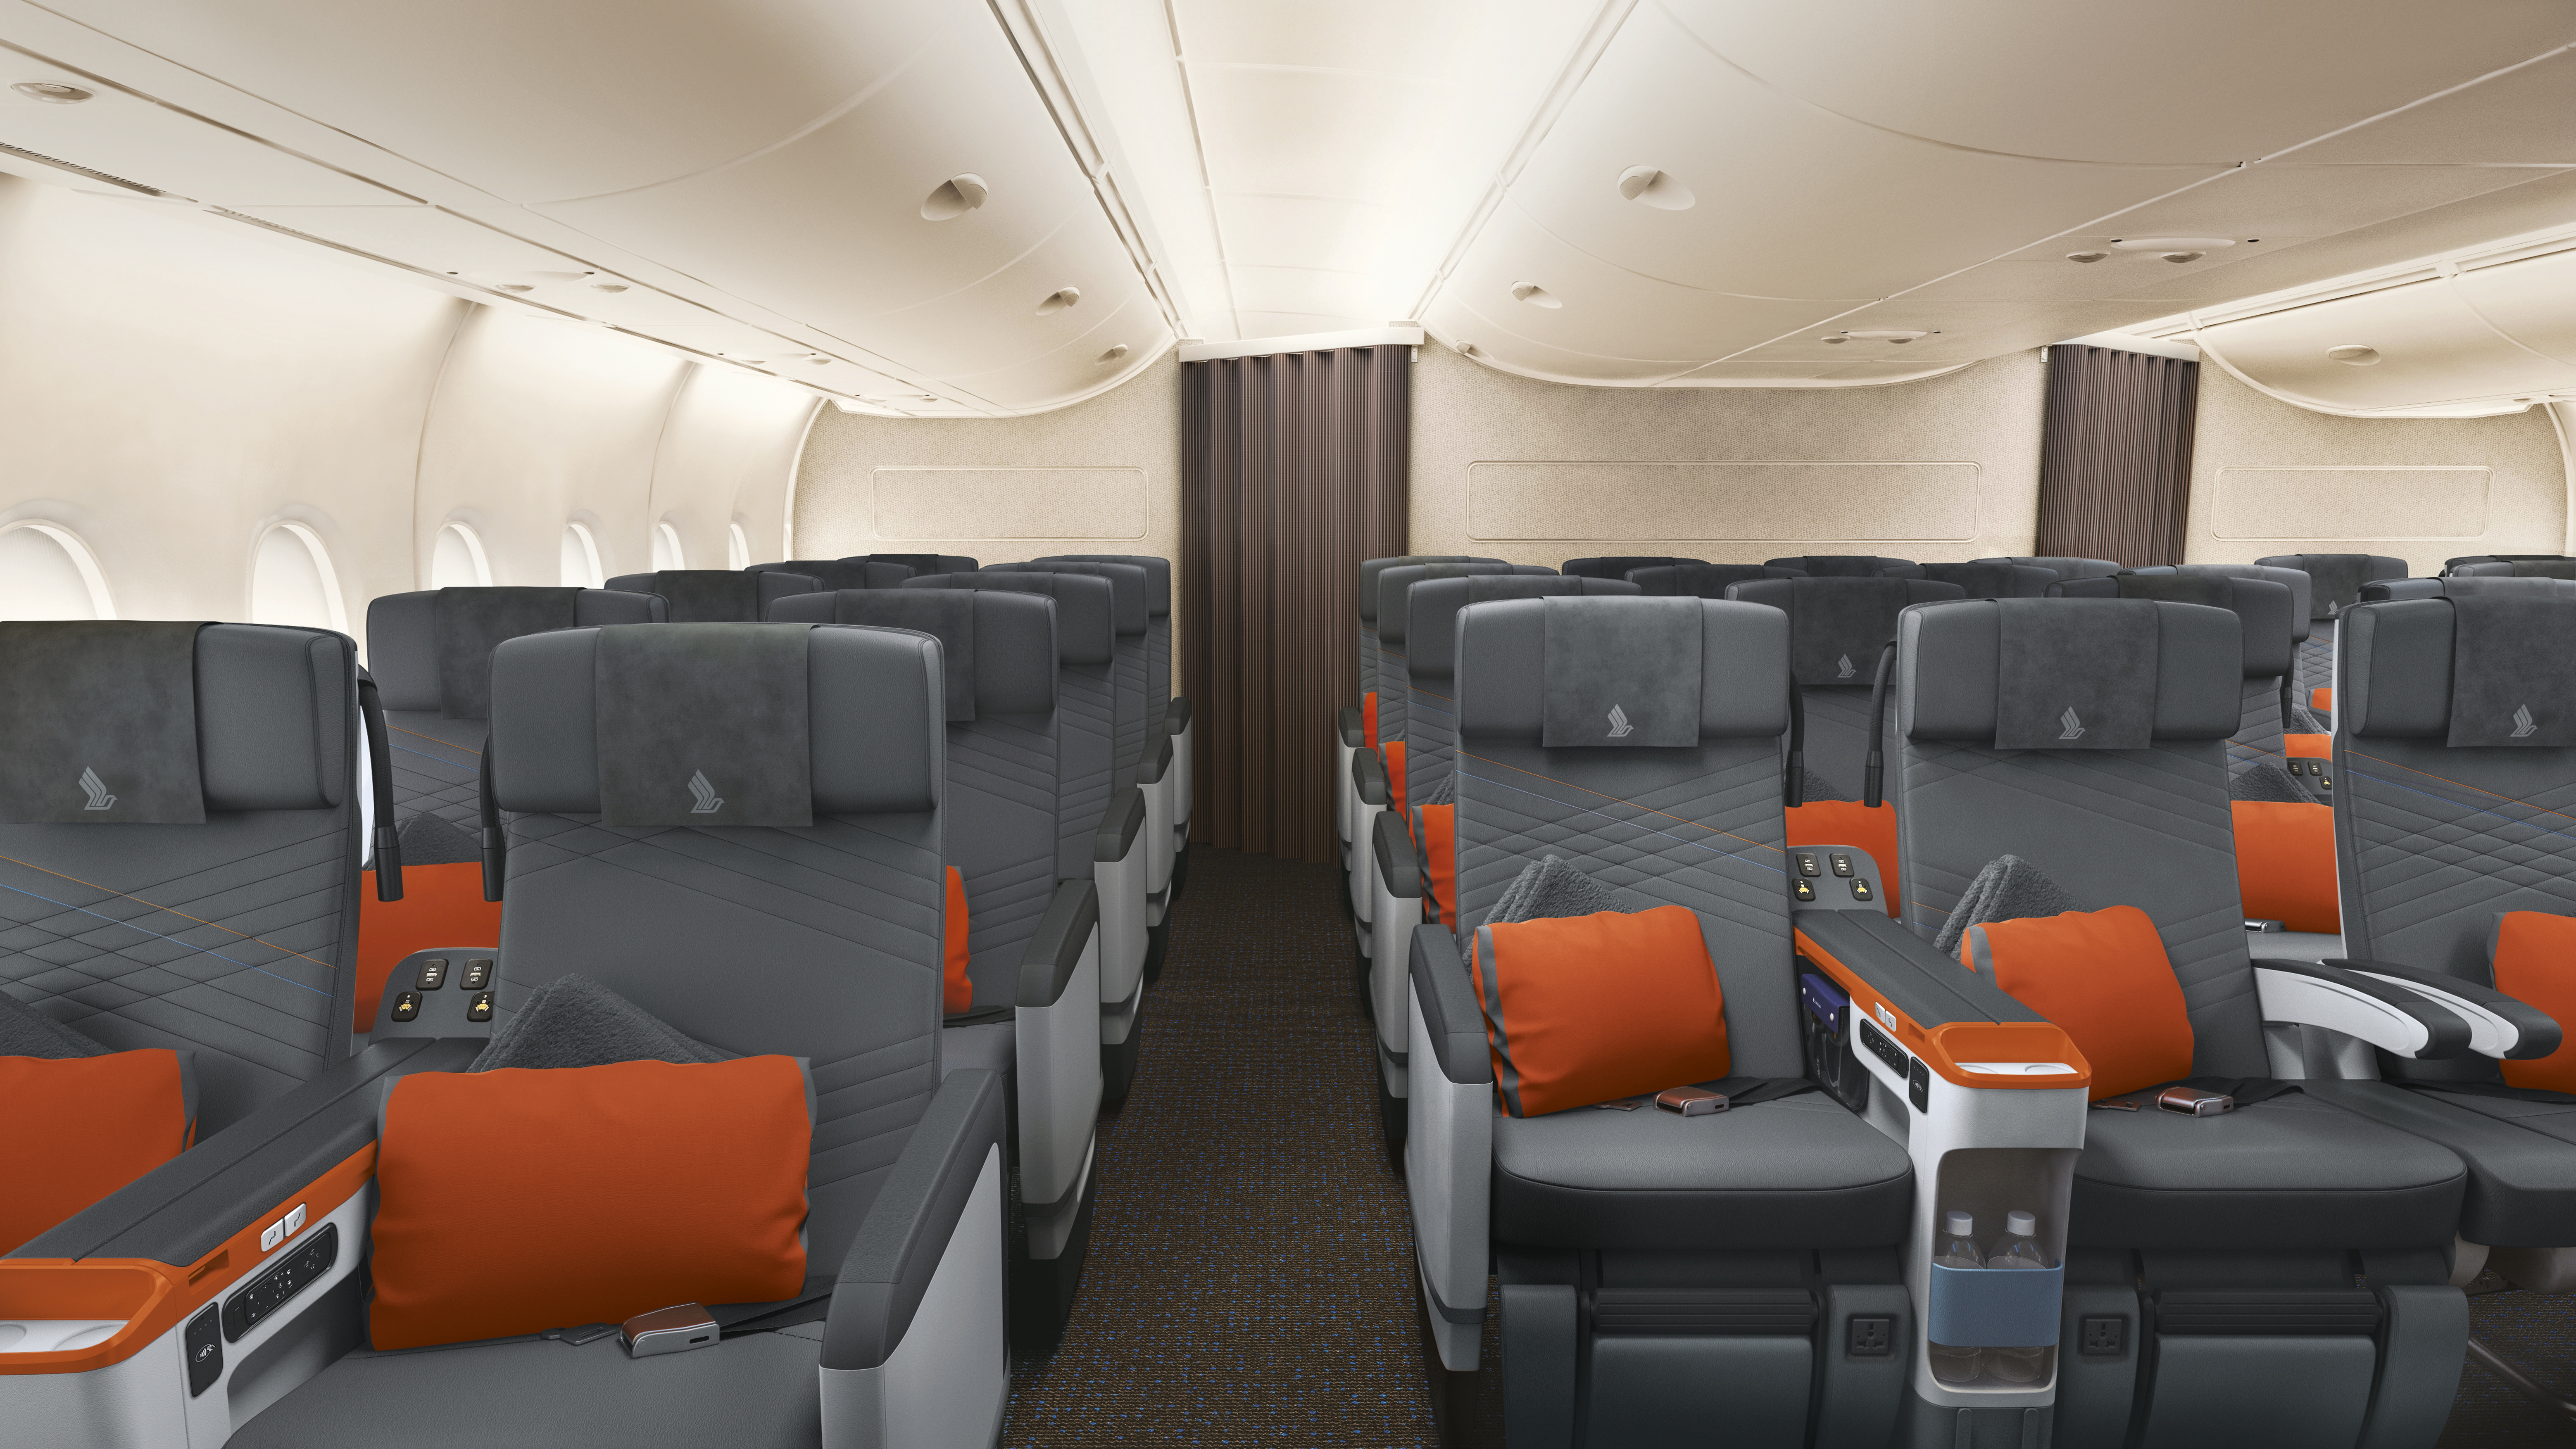 premium economy class_02?w=710 the first aircraft, bearing the uae registration mark a6  at love-stories.co